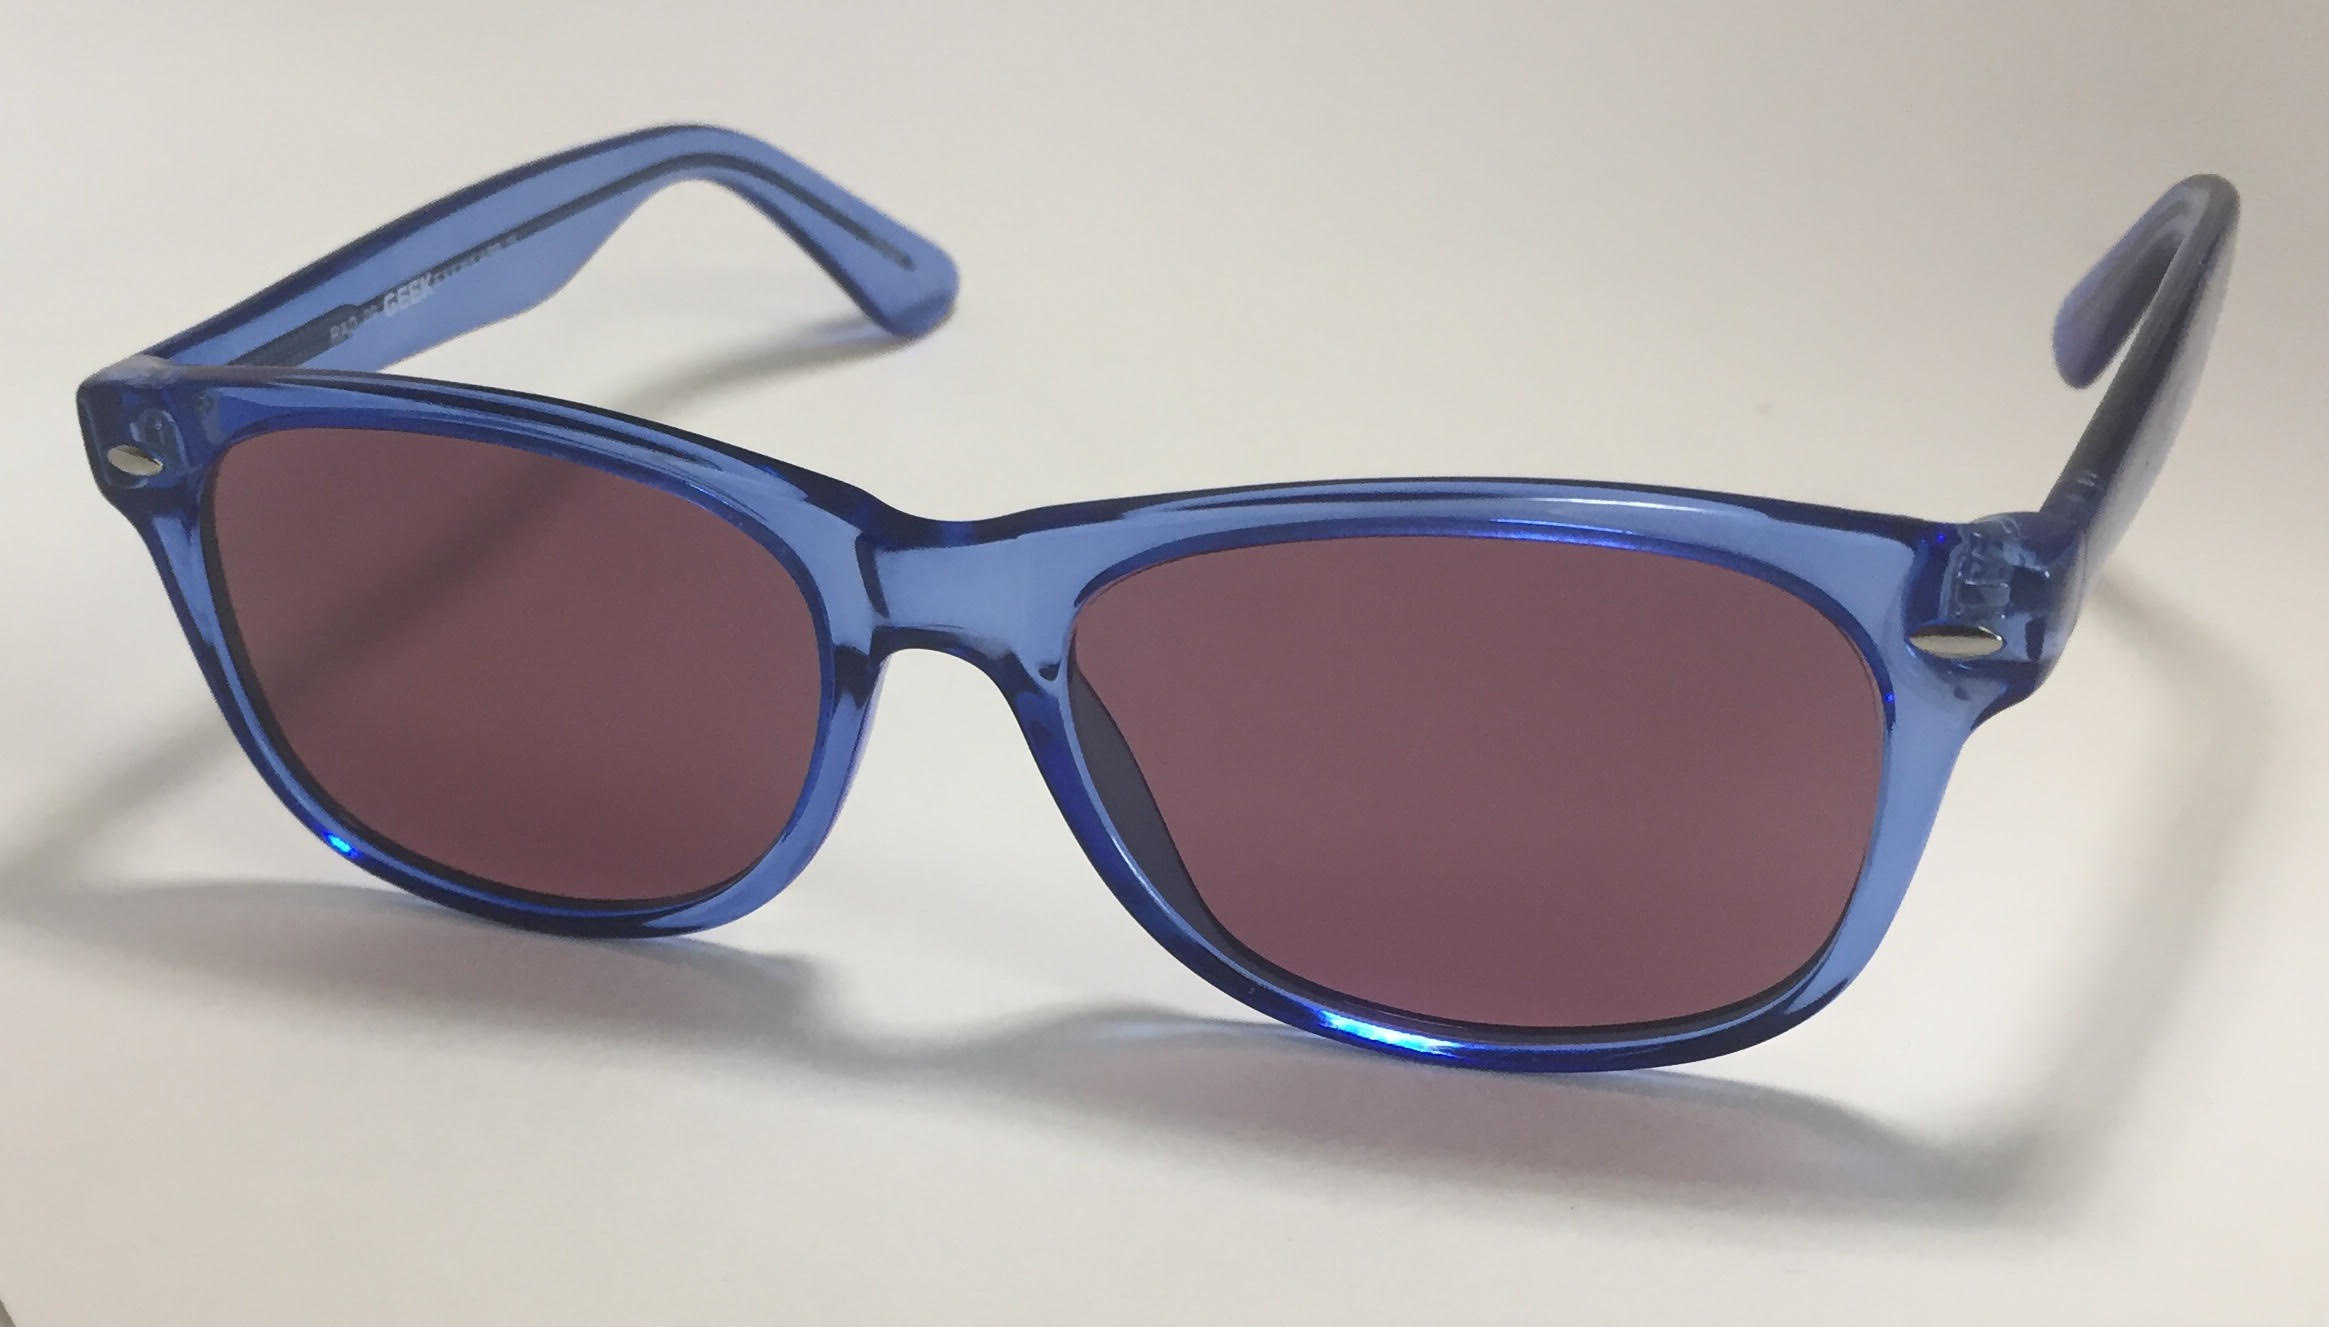 POLYCARBONATE SODIUM FLARE, UV/IR GLASSES IN BLUE